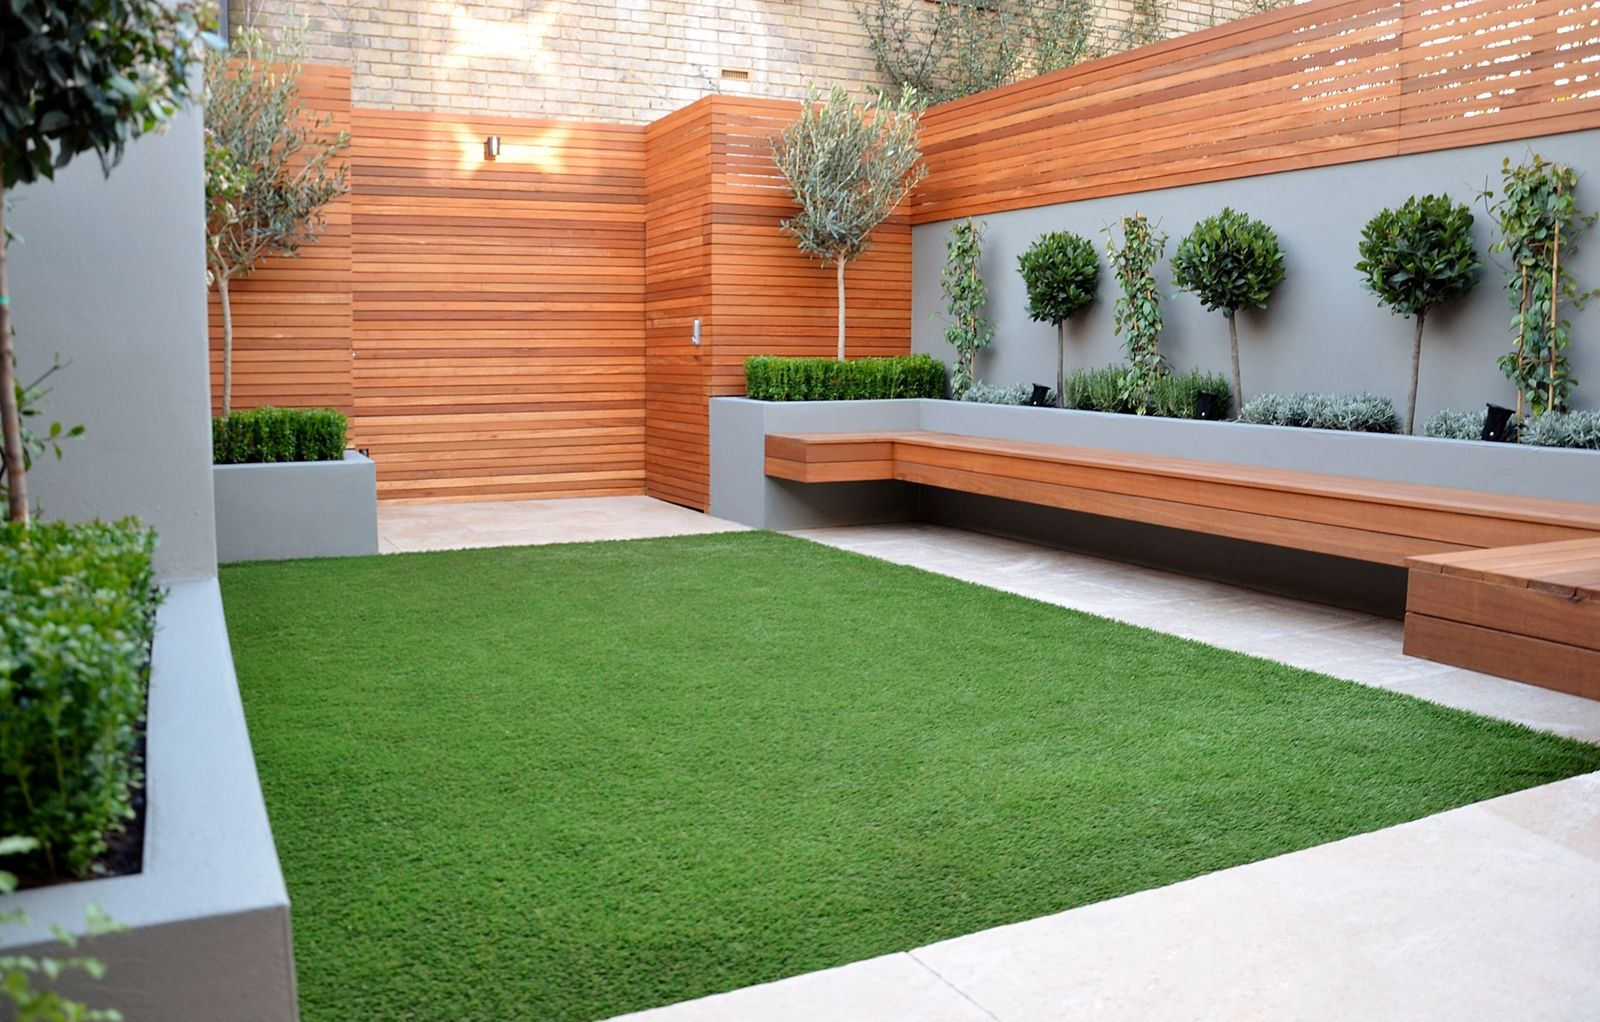 Lovely small garden designs - Chelsea garden design 2015 ... on Modern Landscaping Ideas For Small Backyards  id=47614